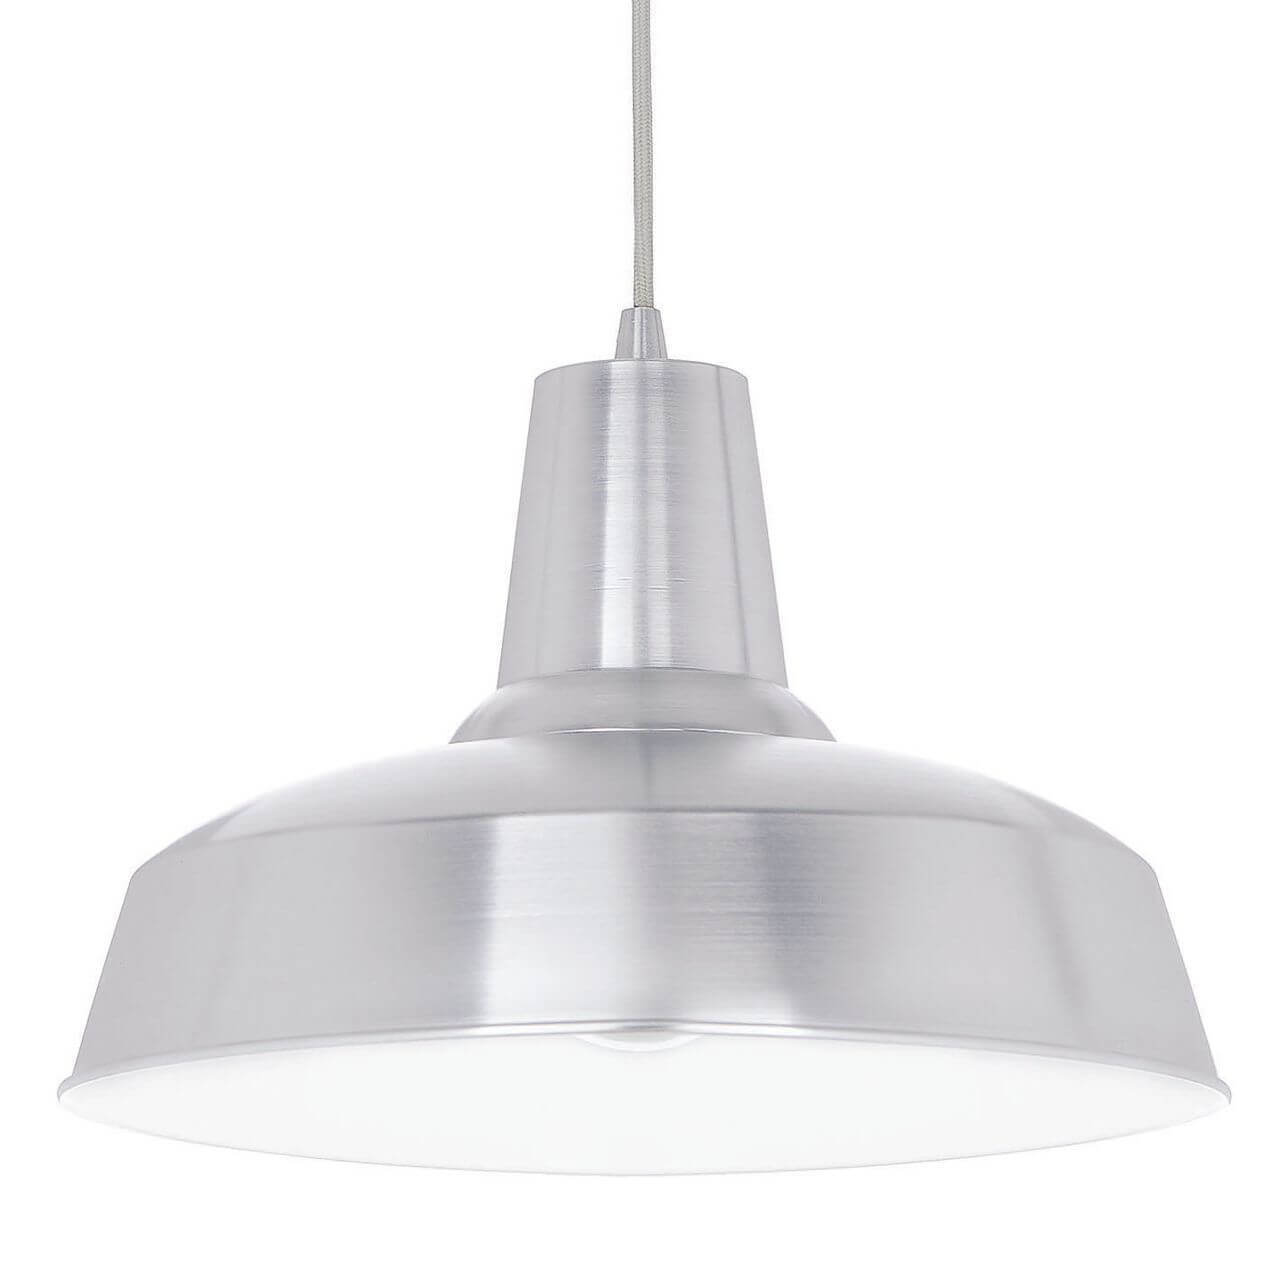 Светильник Ideal Lux Moby SP1 Alluminio Moby подвесной светильник ideal lux wheel sp3 009681